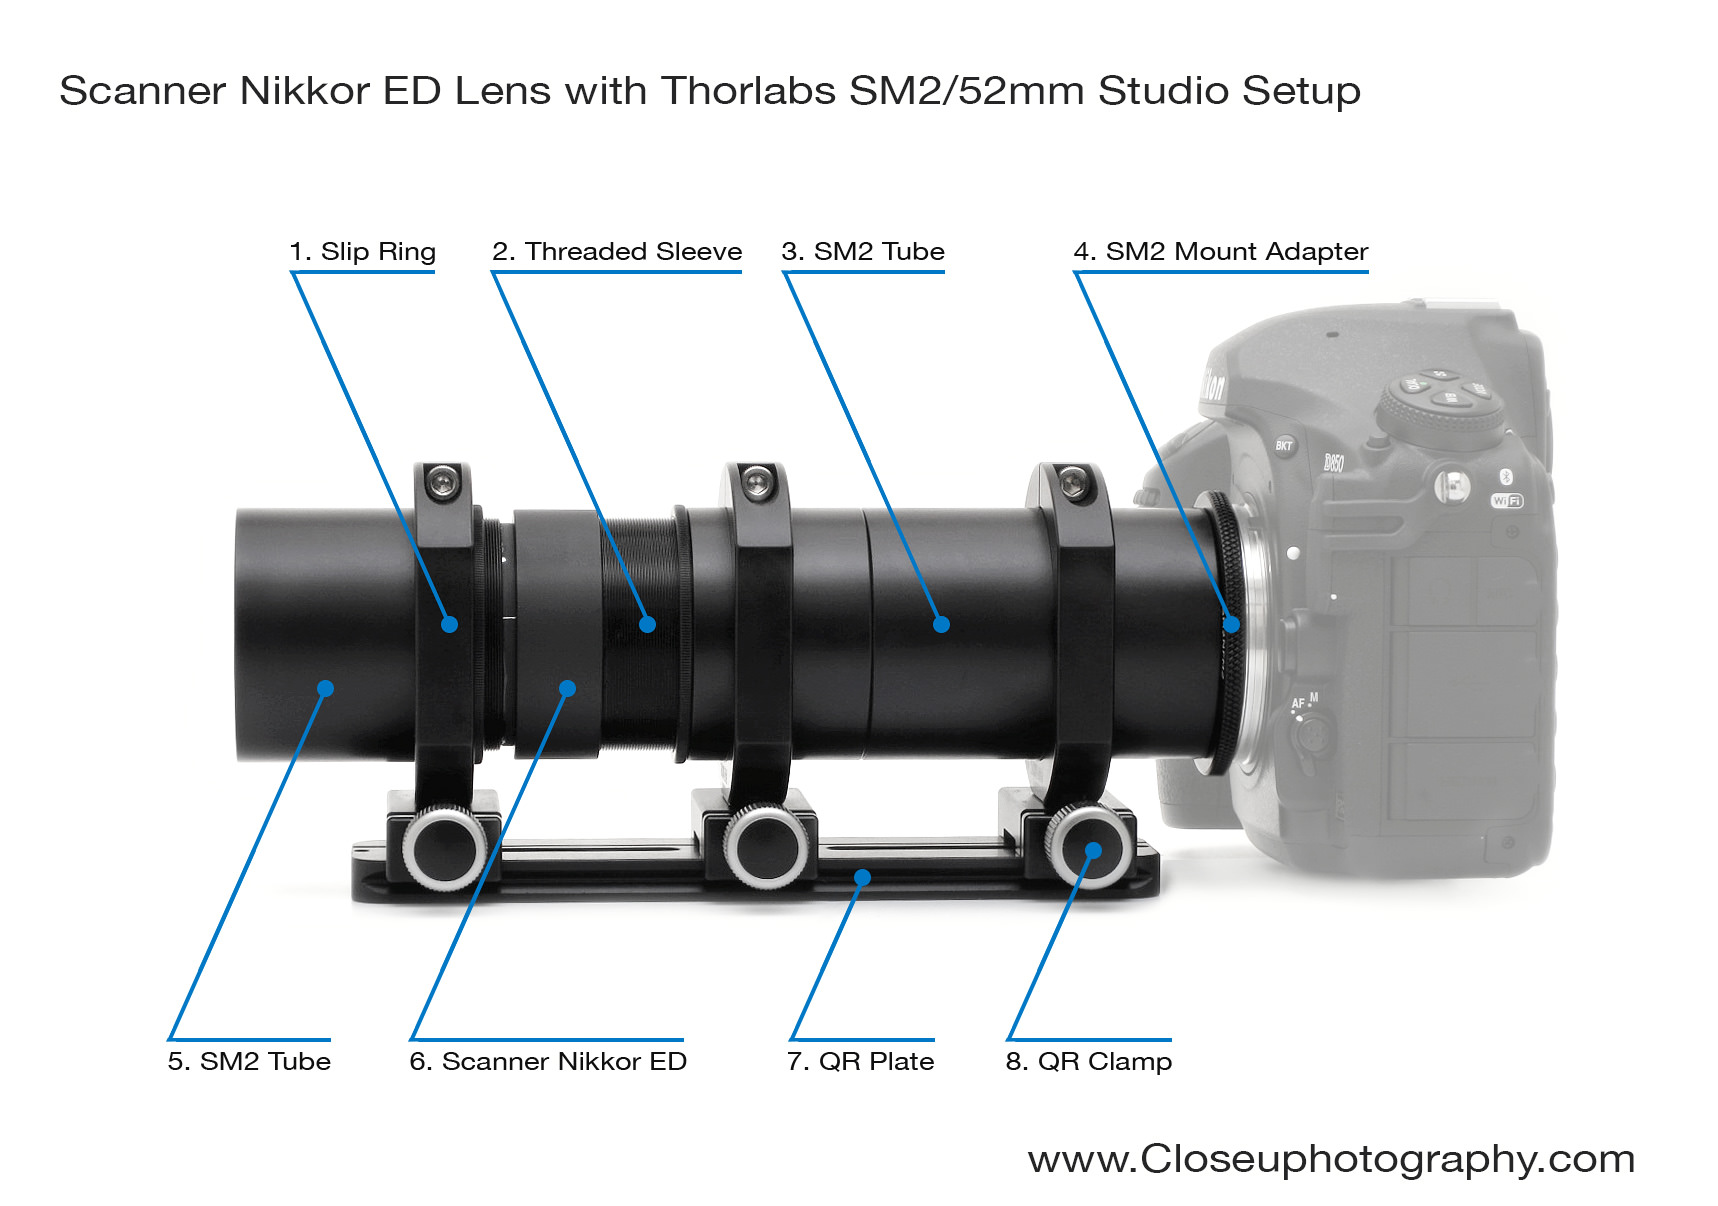 Nikon-Scanner-Nikkor-ED-Thorlabs-SM2-52mm-Studio-set-up-www-Closeuphotography-com.jpg